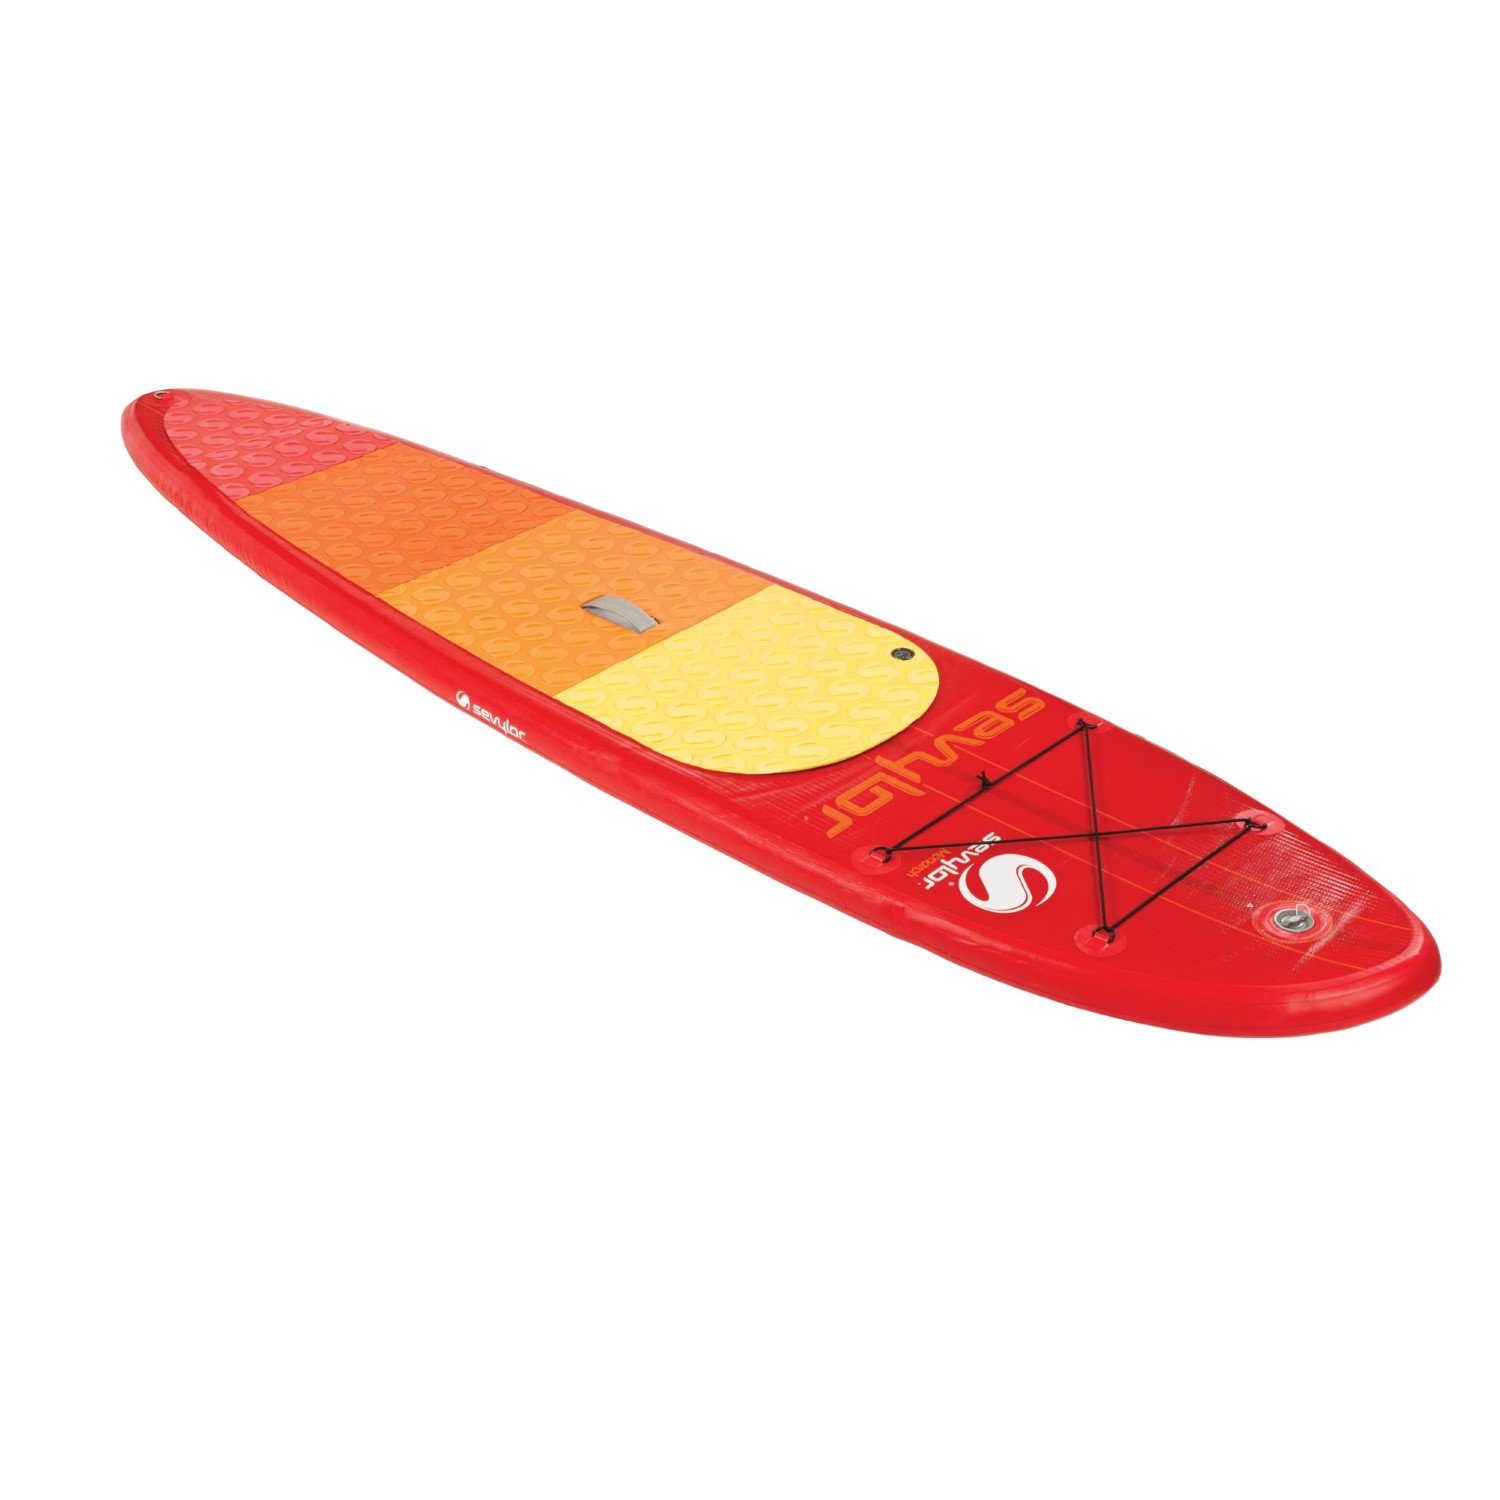 Sevylor Monarch Inflatable Stand Up Paddle Board by Sevylor